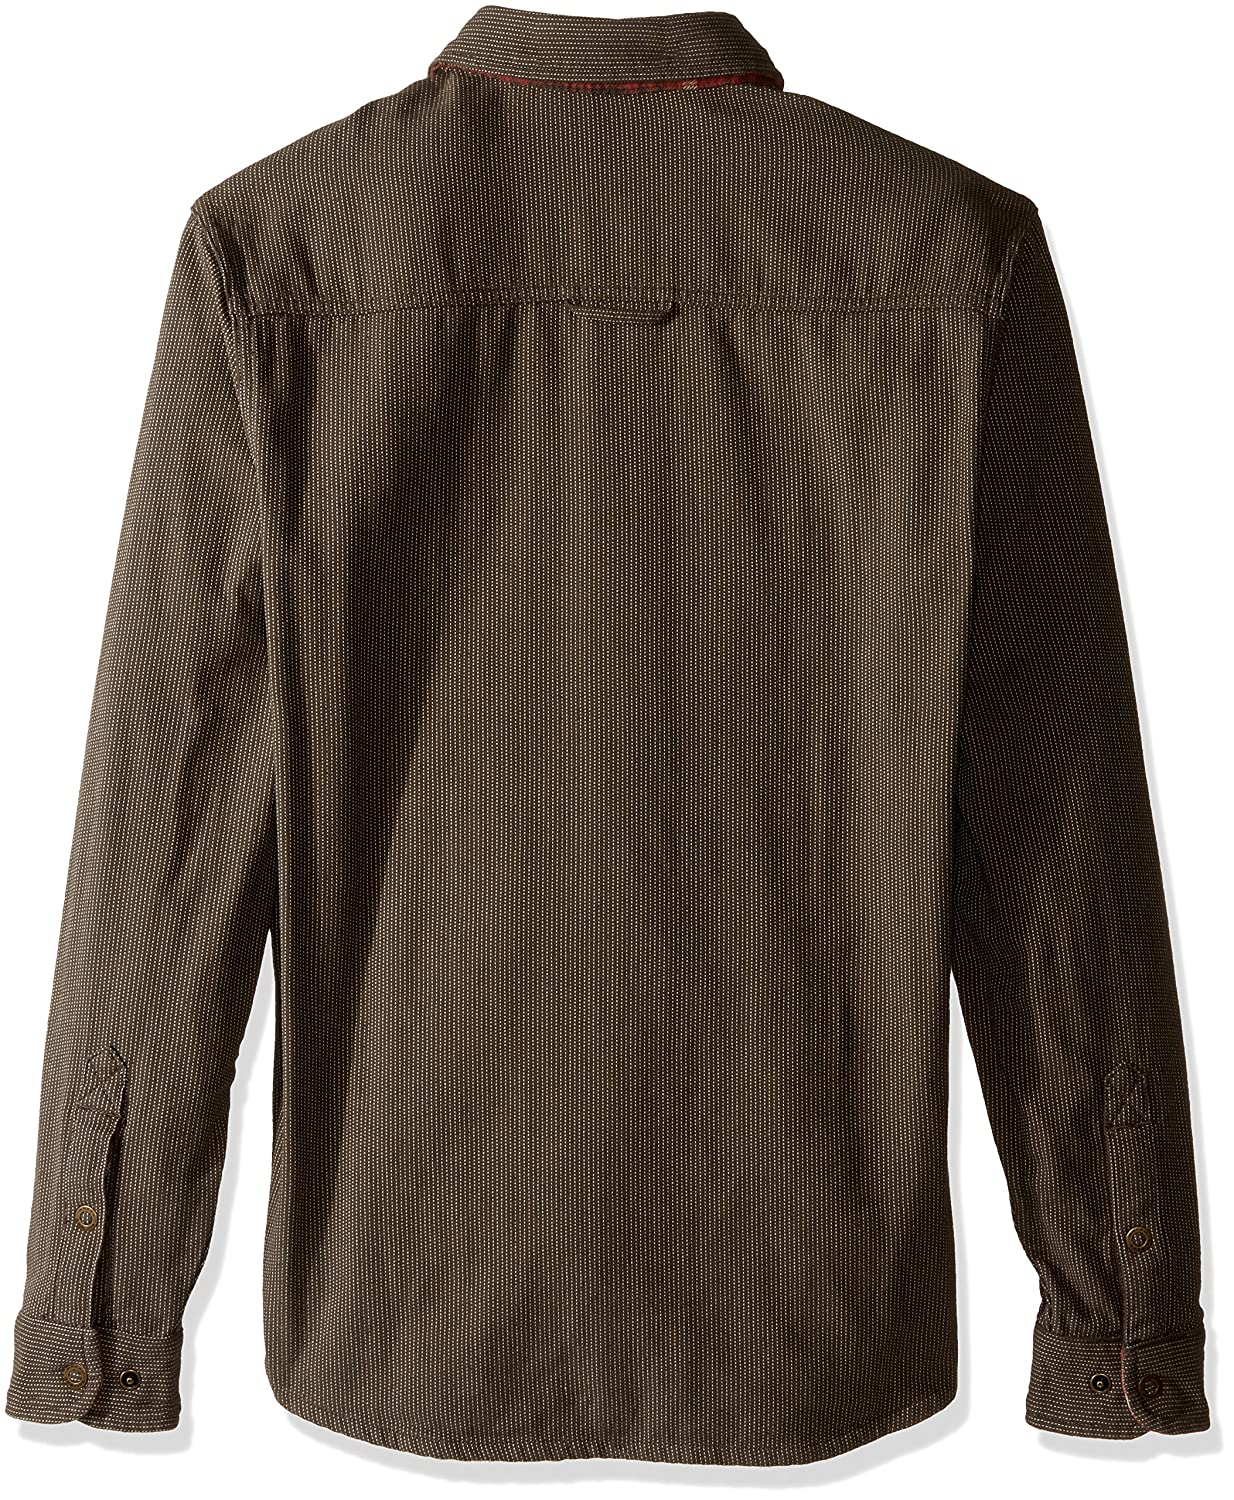 Royal Robbins Double Back Overshirt